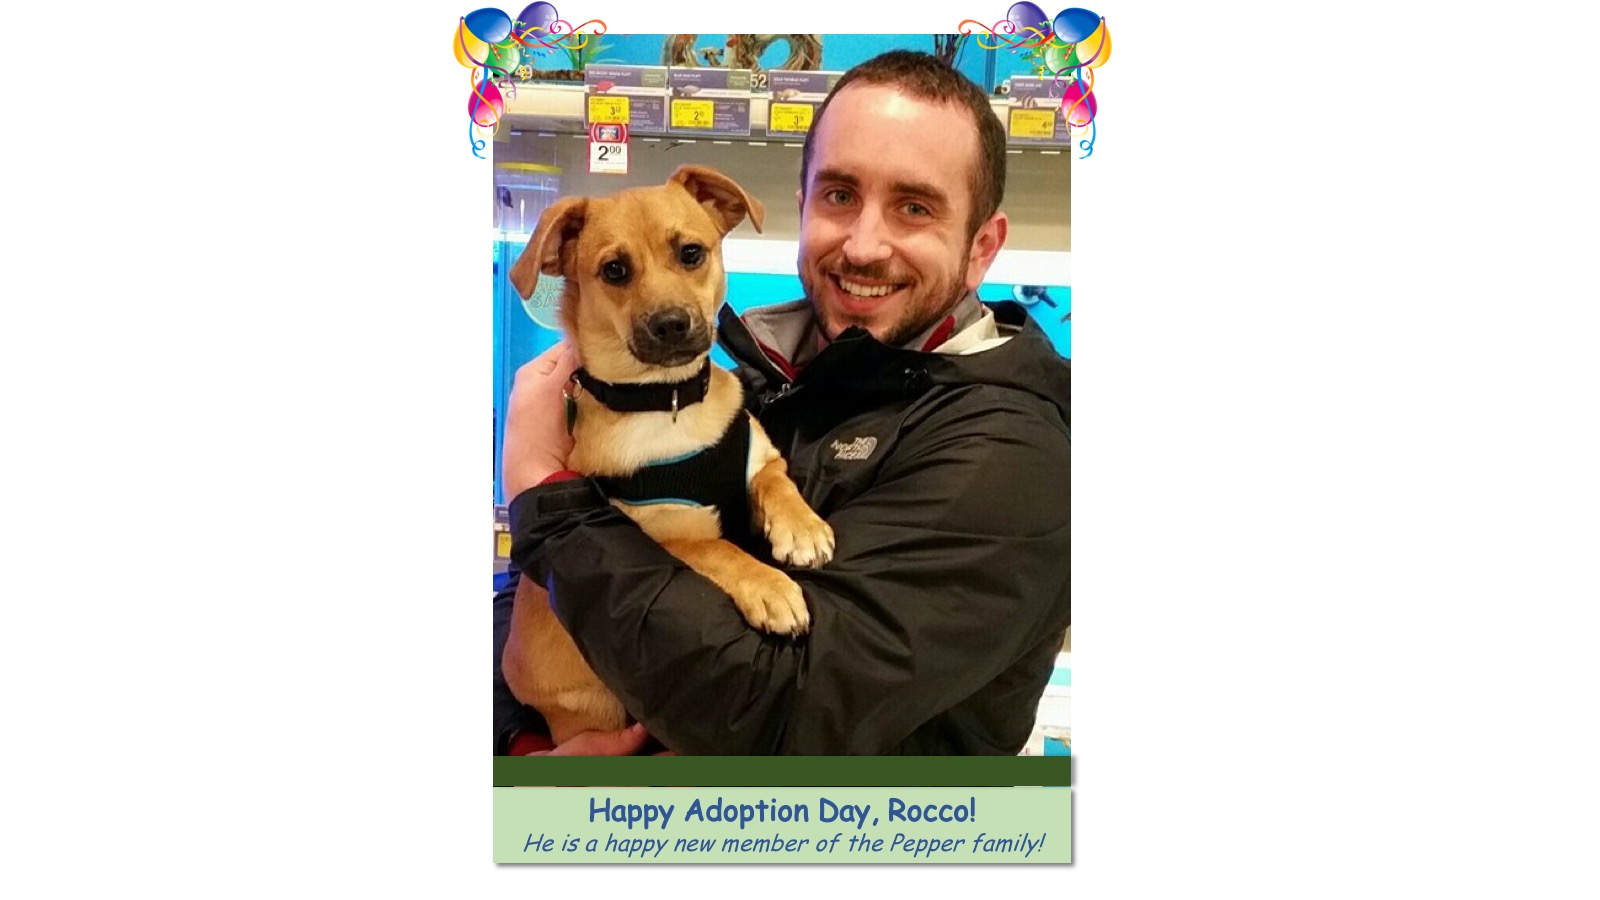 Rocco_Adoption_Photo_2018.jpg